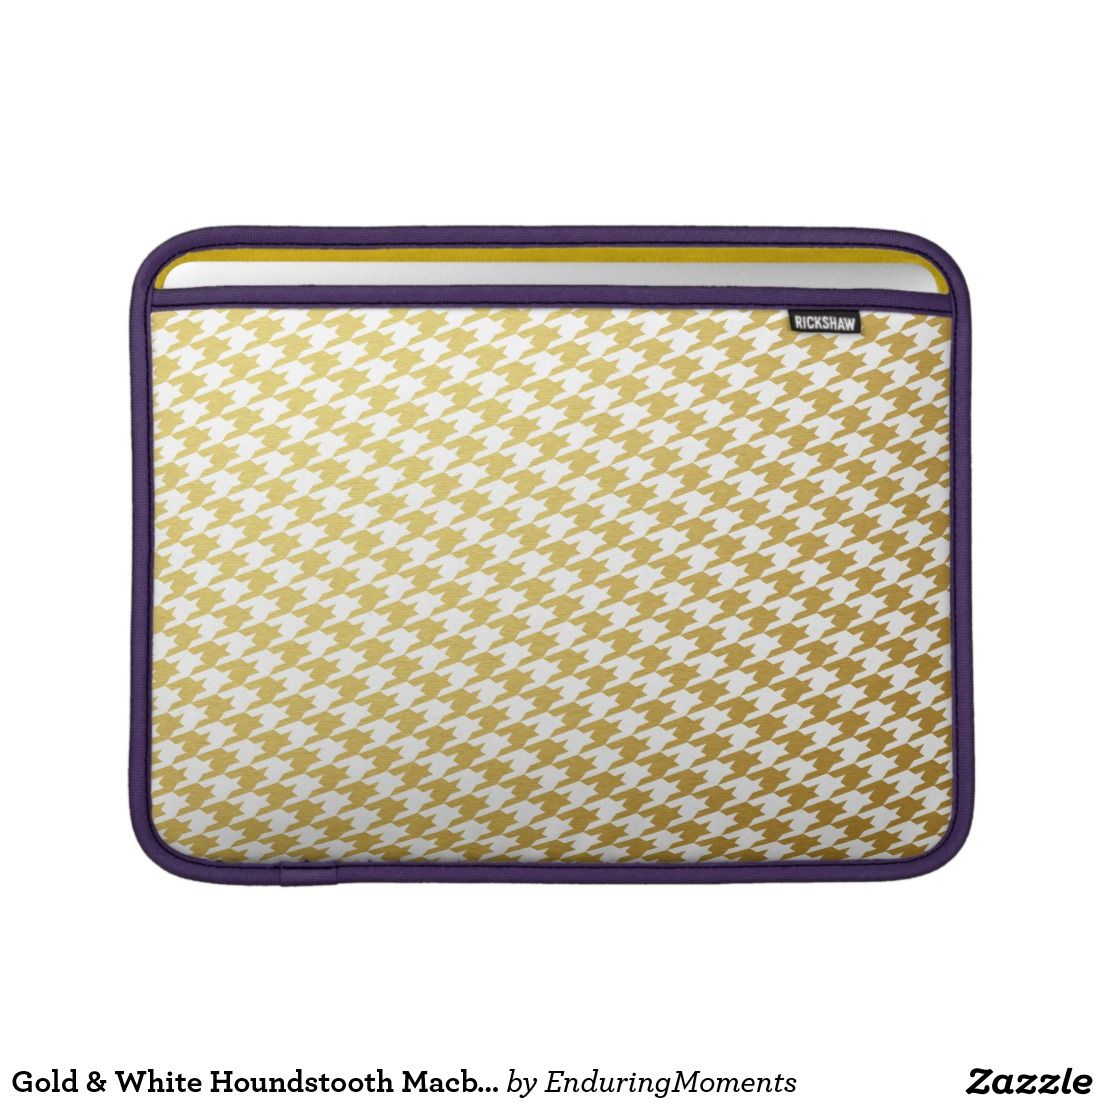 Gold & White Houndstooth Macbook Air Sleeve